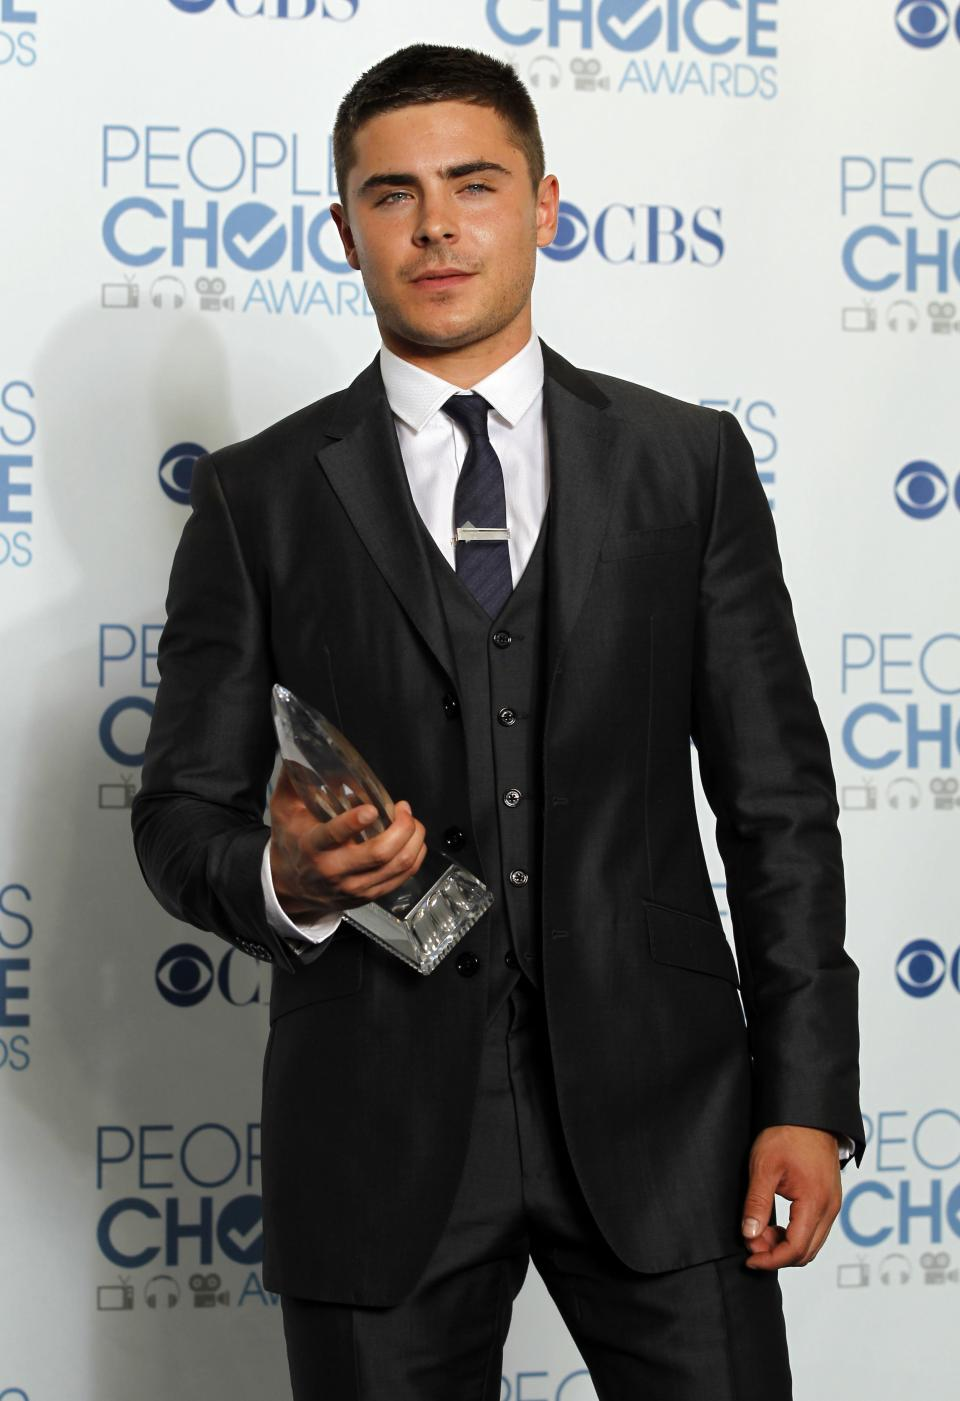 Zac Efron poses for a photo backstage with the award for favorite movie star under 25 presented by Moviefone at the People's Choice Awards on Wednesday, Jan. 5, 2011, in Los Angeles. (AP Photo/Matt Sayles)